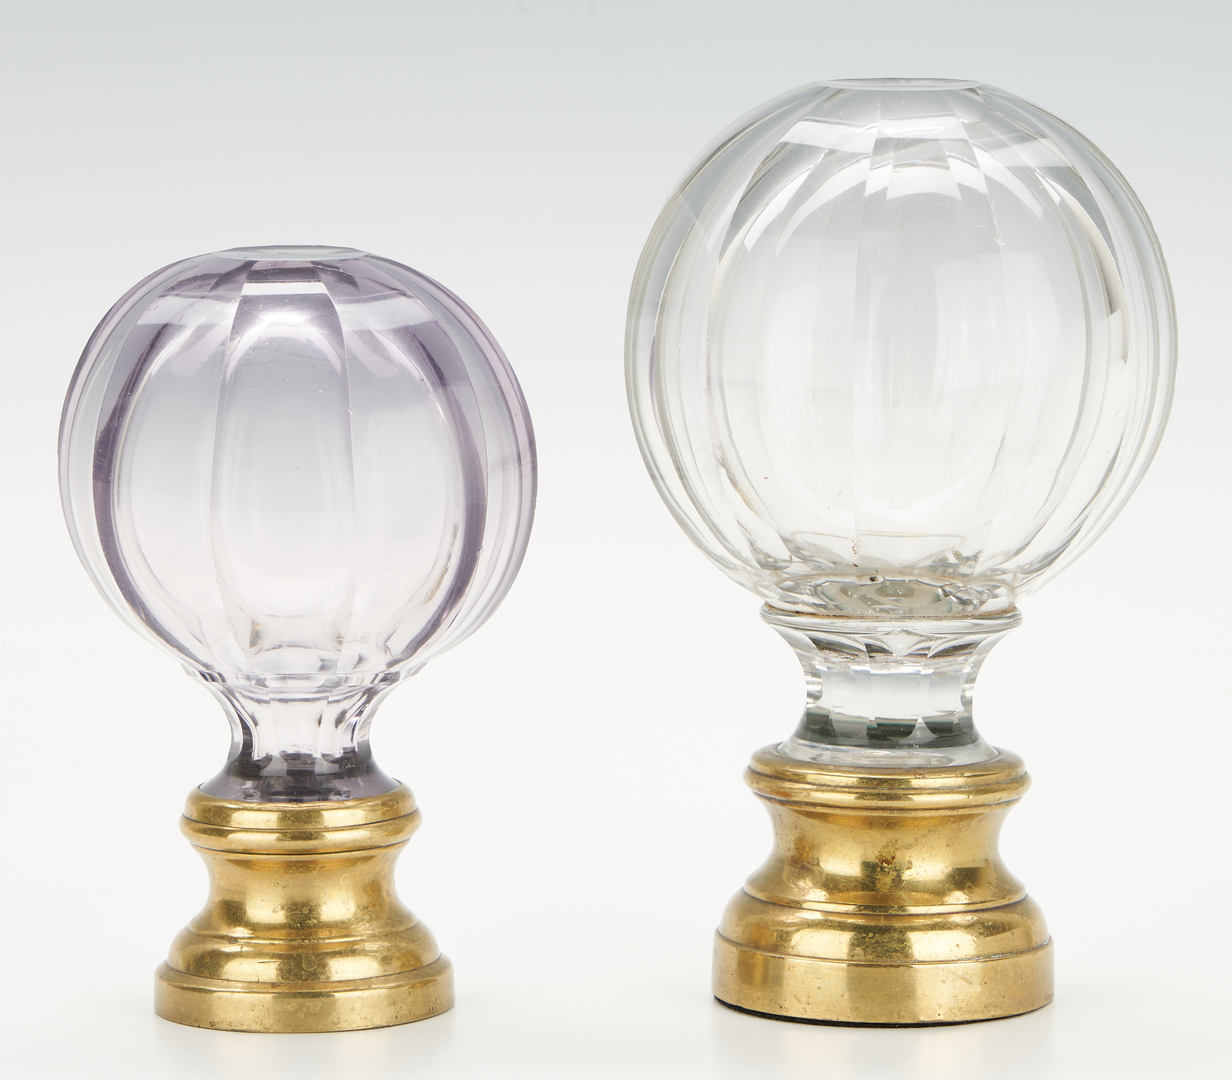 Lot 246: 4 French Spherical Glass Newel Finials